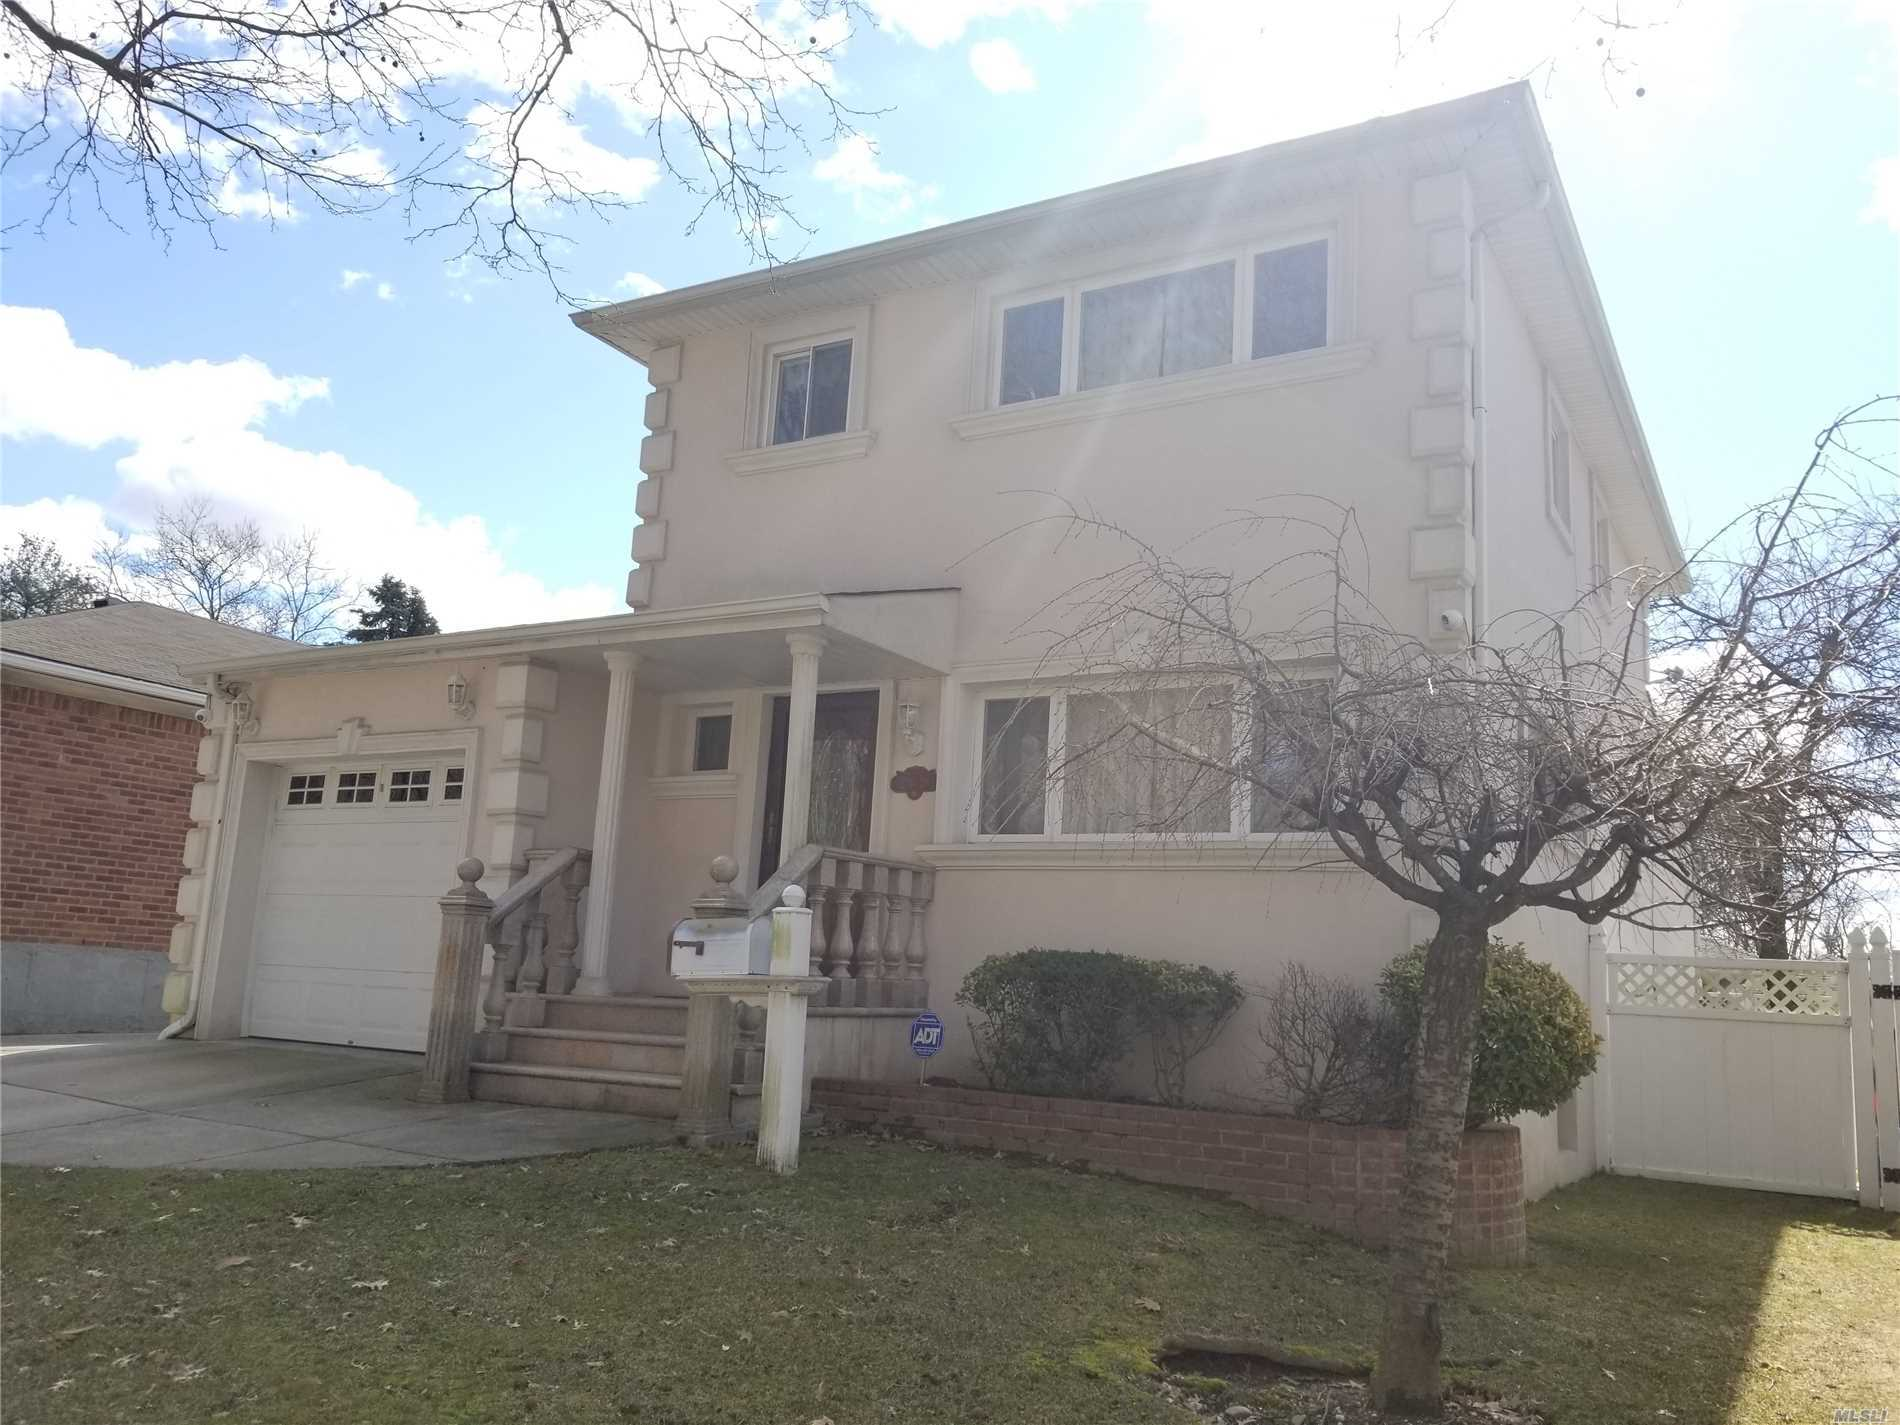 This is a True Gem in Oakland Gardens, Gorgeous Stucco finished colonial in front of the Alley Pond park, Very quiet location, Enjoy the four seasons of nature from your living room, Cathedral ceiling family room with a fireplace has bay window and sliding door to deck, High ceiling finished basement with side entrance, All fenced private backyard, Cement patio, SD#26, P.S. 188 kingsbury, Convenient transportation, bus Q88, QM5, Q27 to flushing, Must See Your Next Home Sweet Home